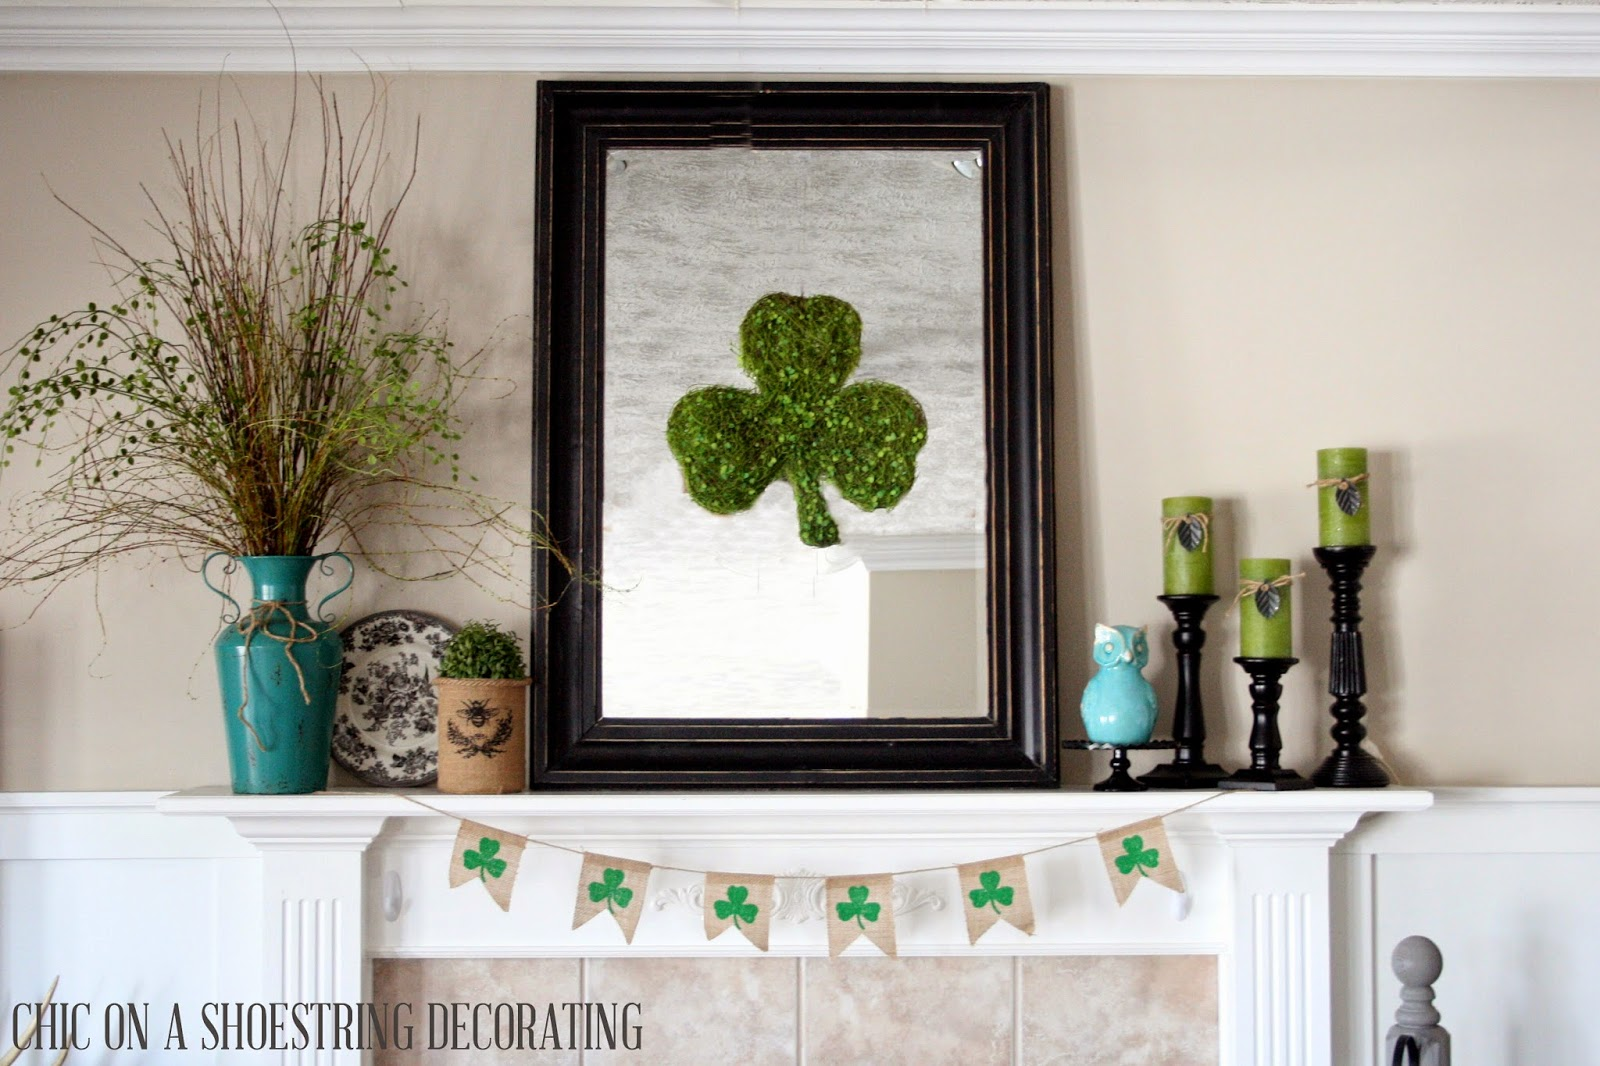 chic on a shoestring decorating easy st patrick 39 s day decor. Black Bedroom Furniture Sets. Home Design Ideas